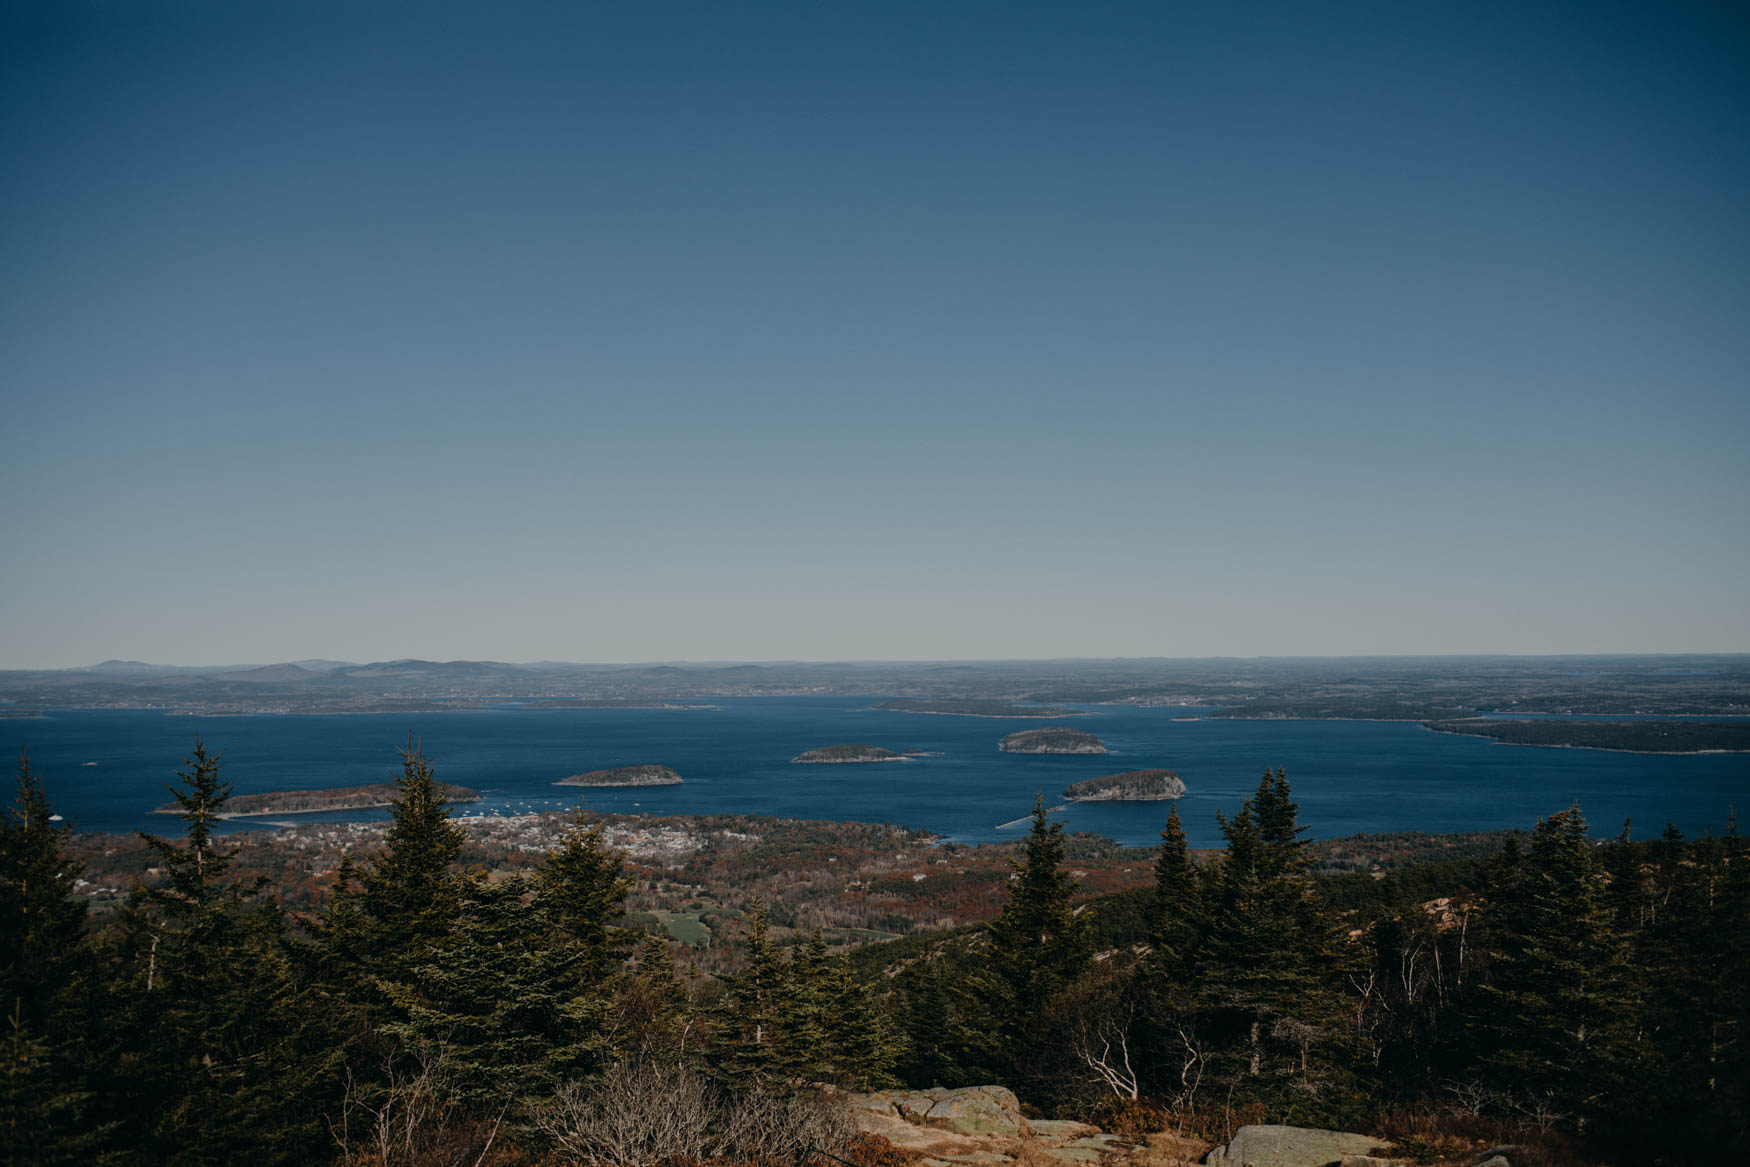 The view from the top of Cadillac Mountain, we wanted to go for sunrise, but there was no way that that was going to happen! It was beautiful, but also the coldest place ever! We only spent a total of about 5 minutes there because we couldn't take the cold and wind!